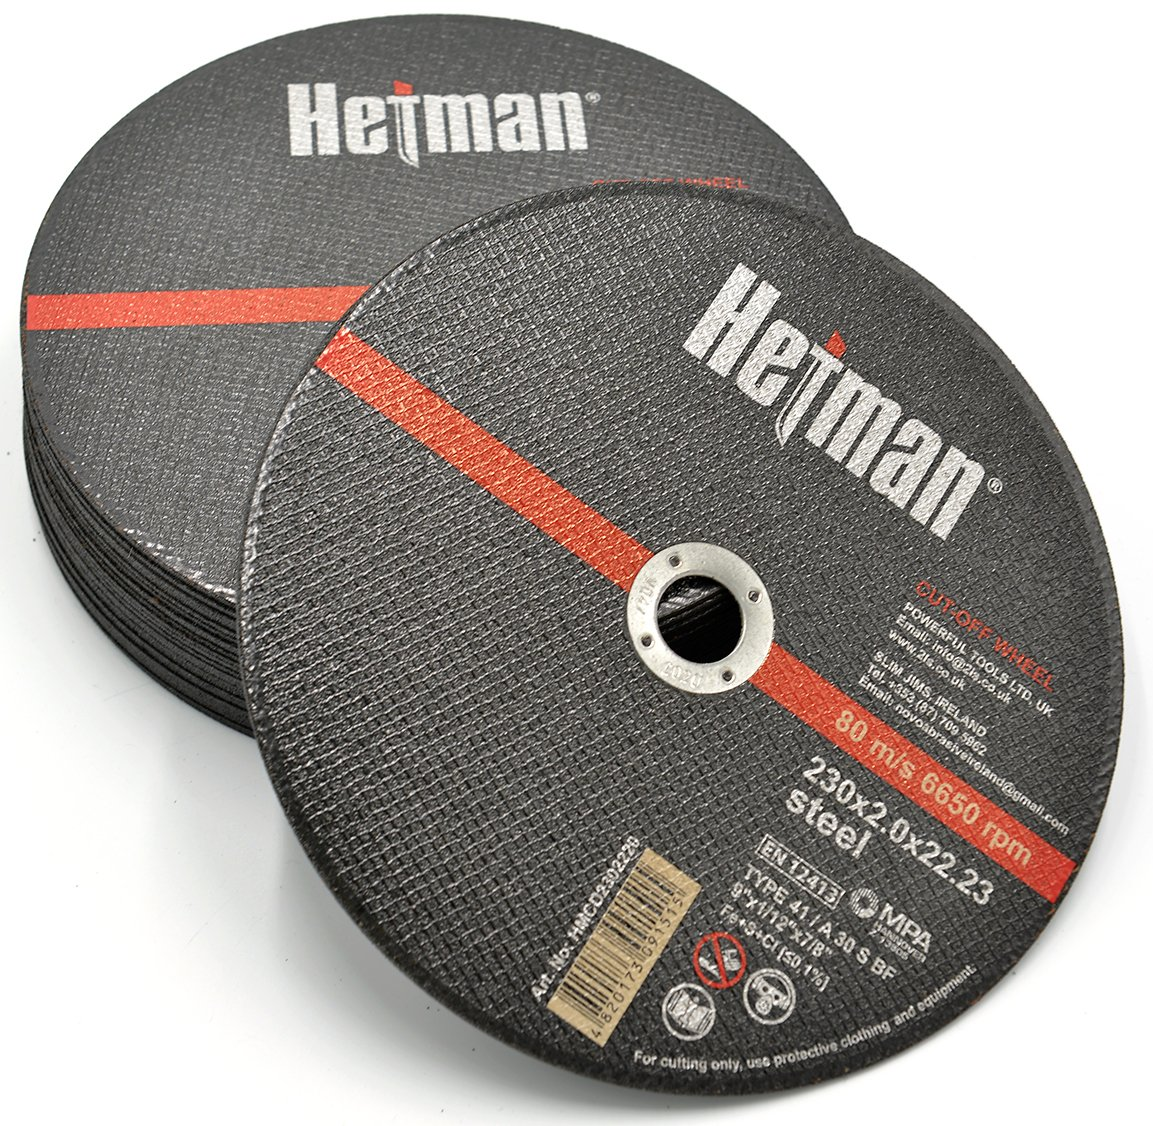 HETMAN Metal Cutting Discs 115mm x 1mm (PACK OF 10 PCS) For Angle Grinder Use For Metal, Stainless Steel, Steel and Non-Ferrous Metals Novoabrasive.com HMCD1152210